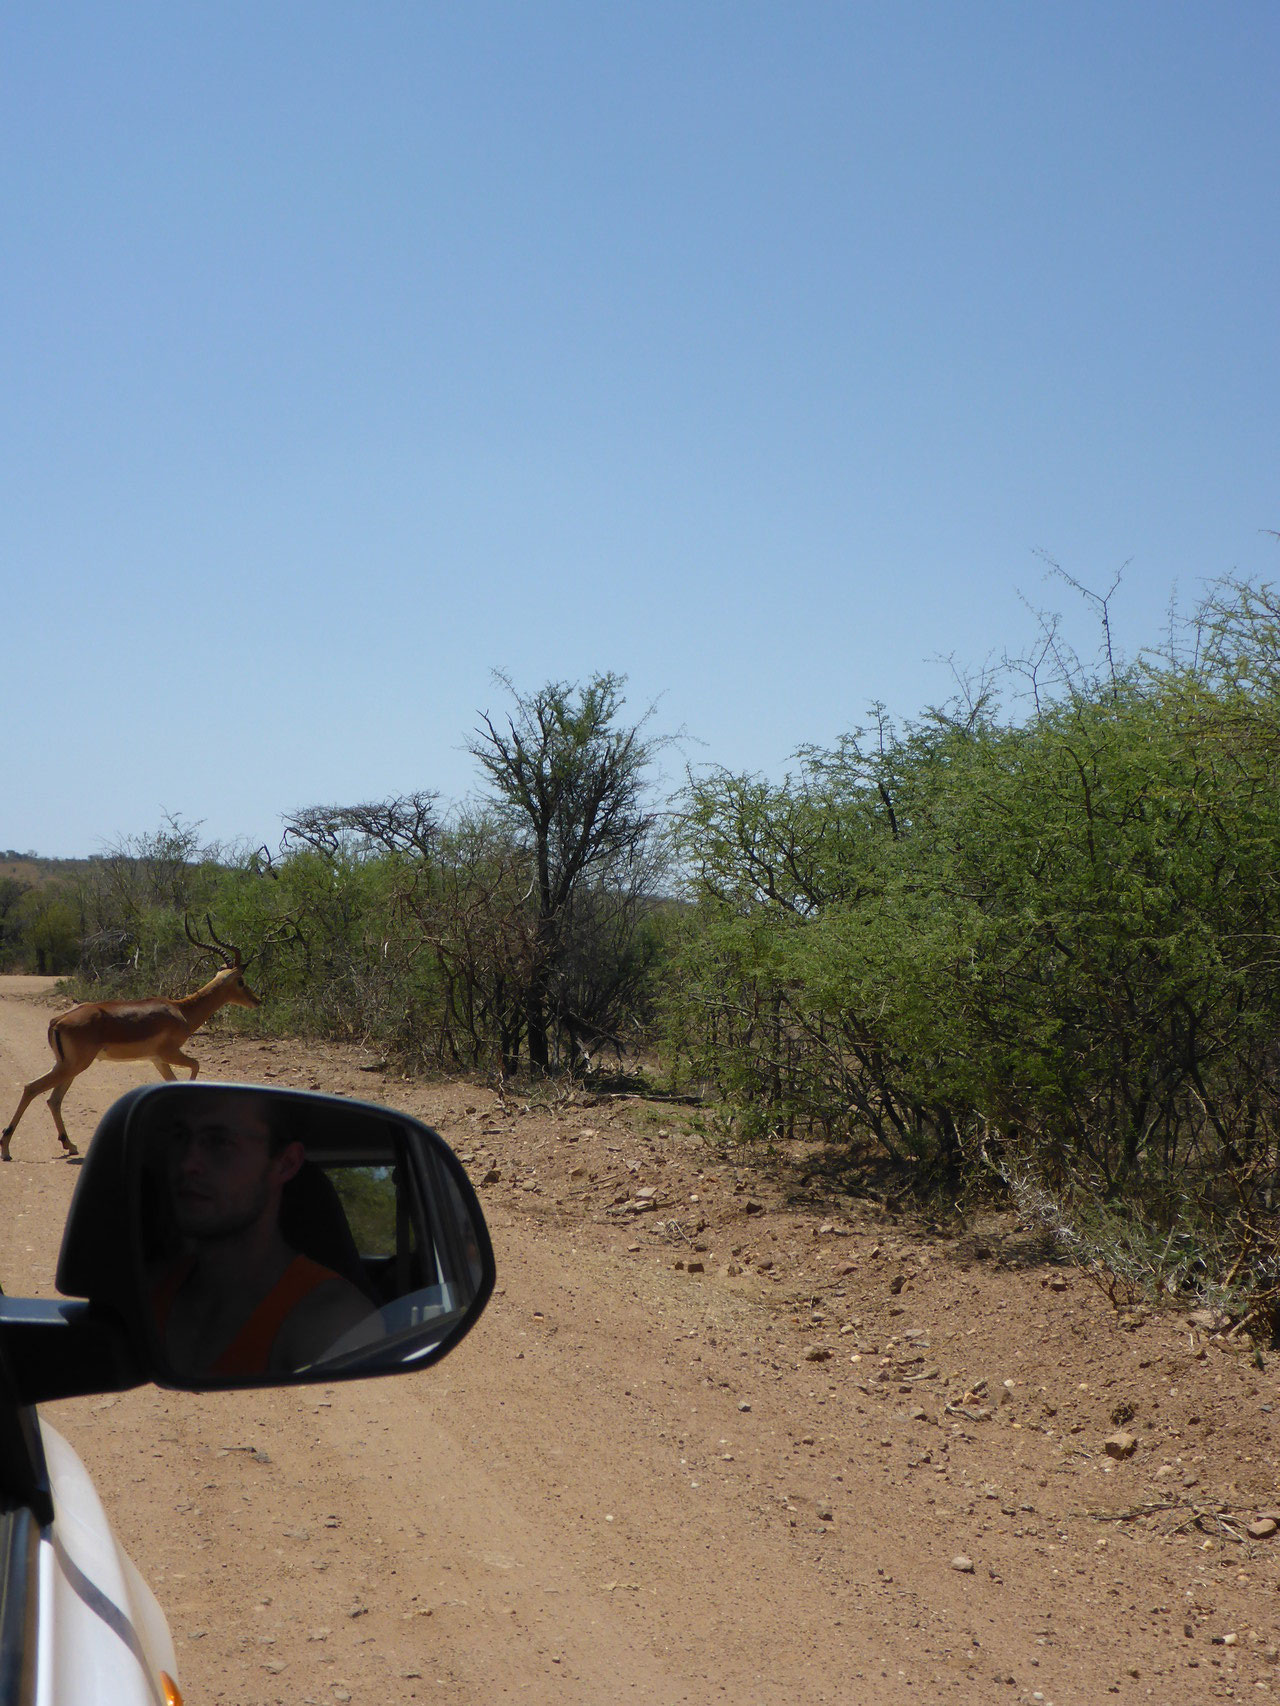 Where is that Impala coming from?